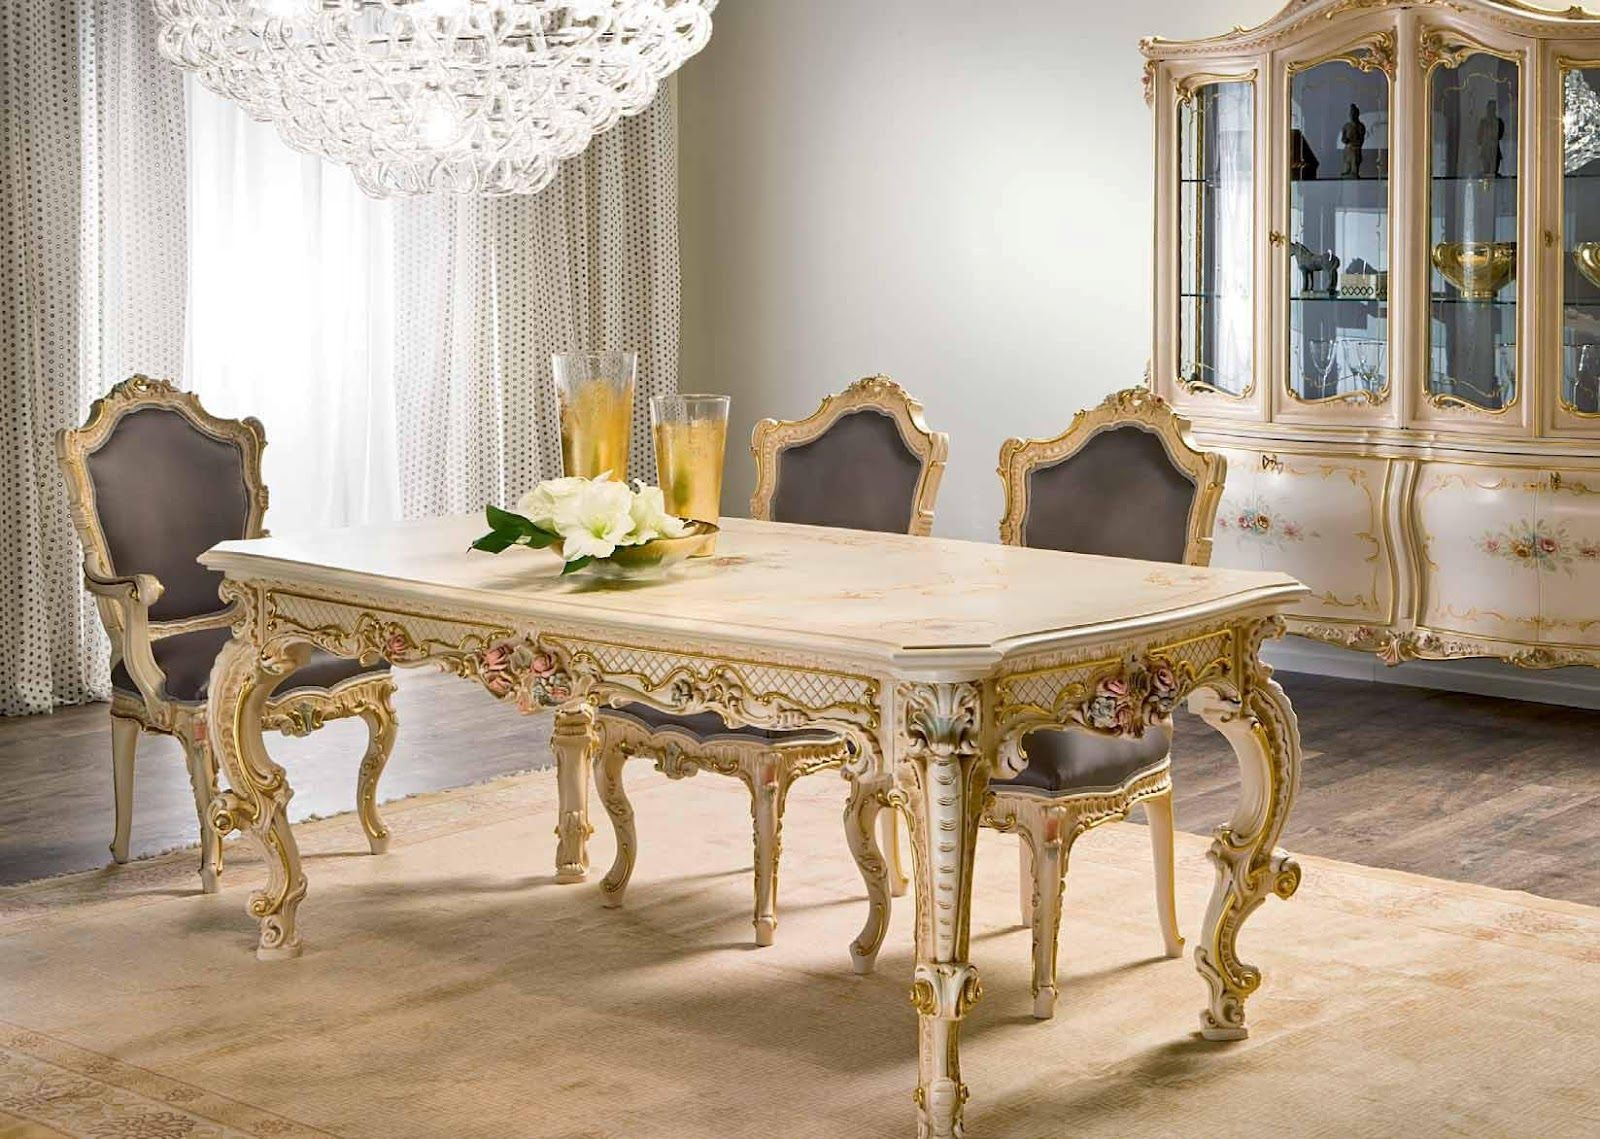 french style furniture classical collection(画像あり)